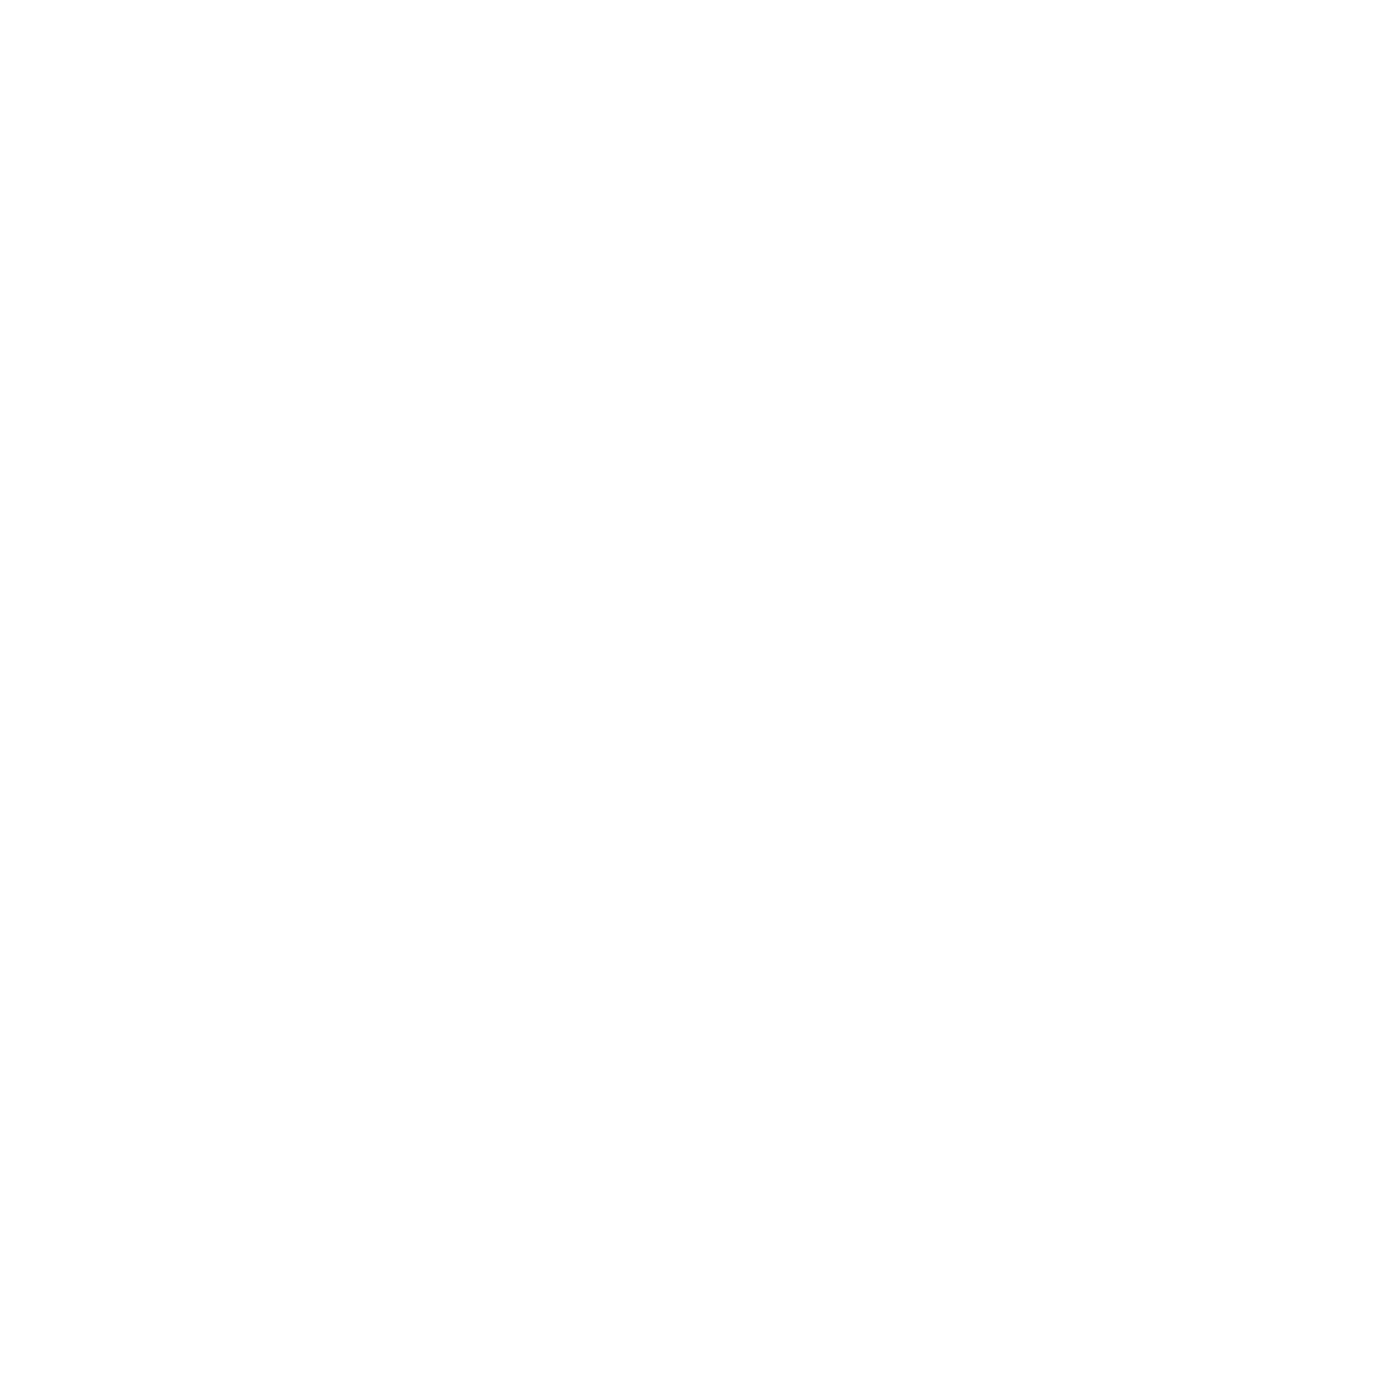 Cosmo City Church